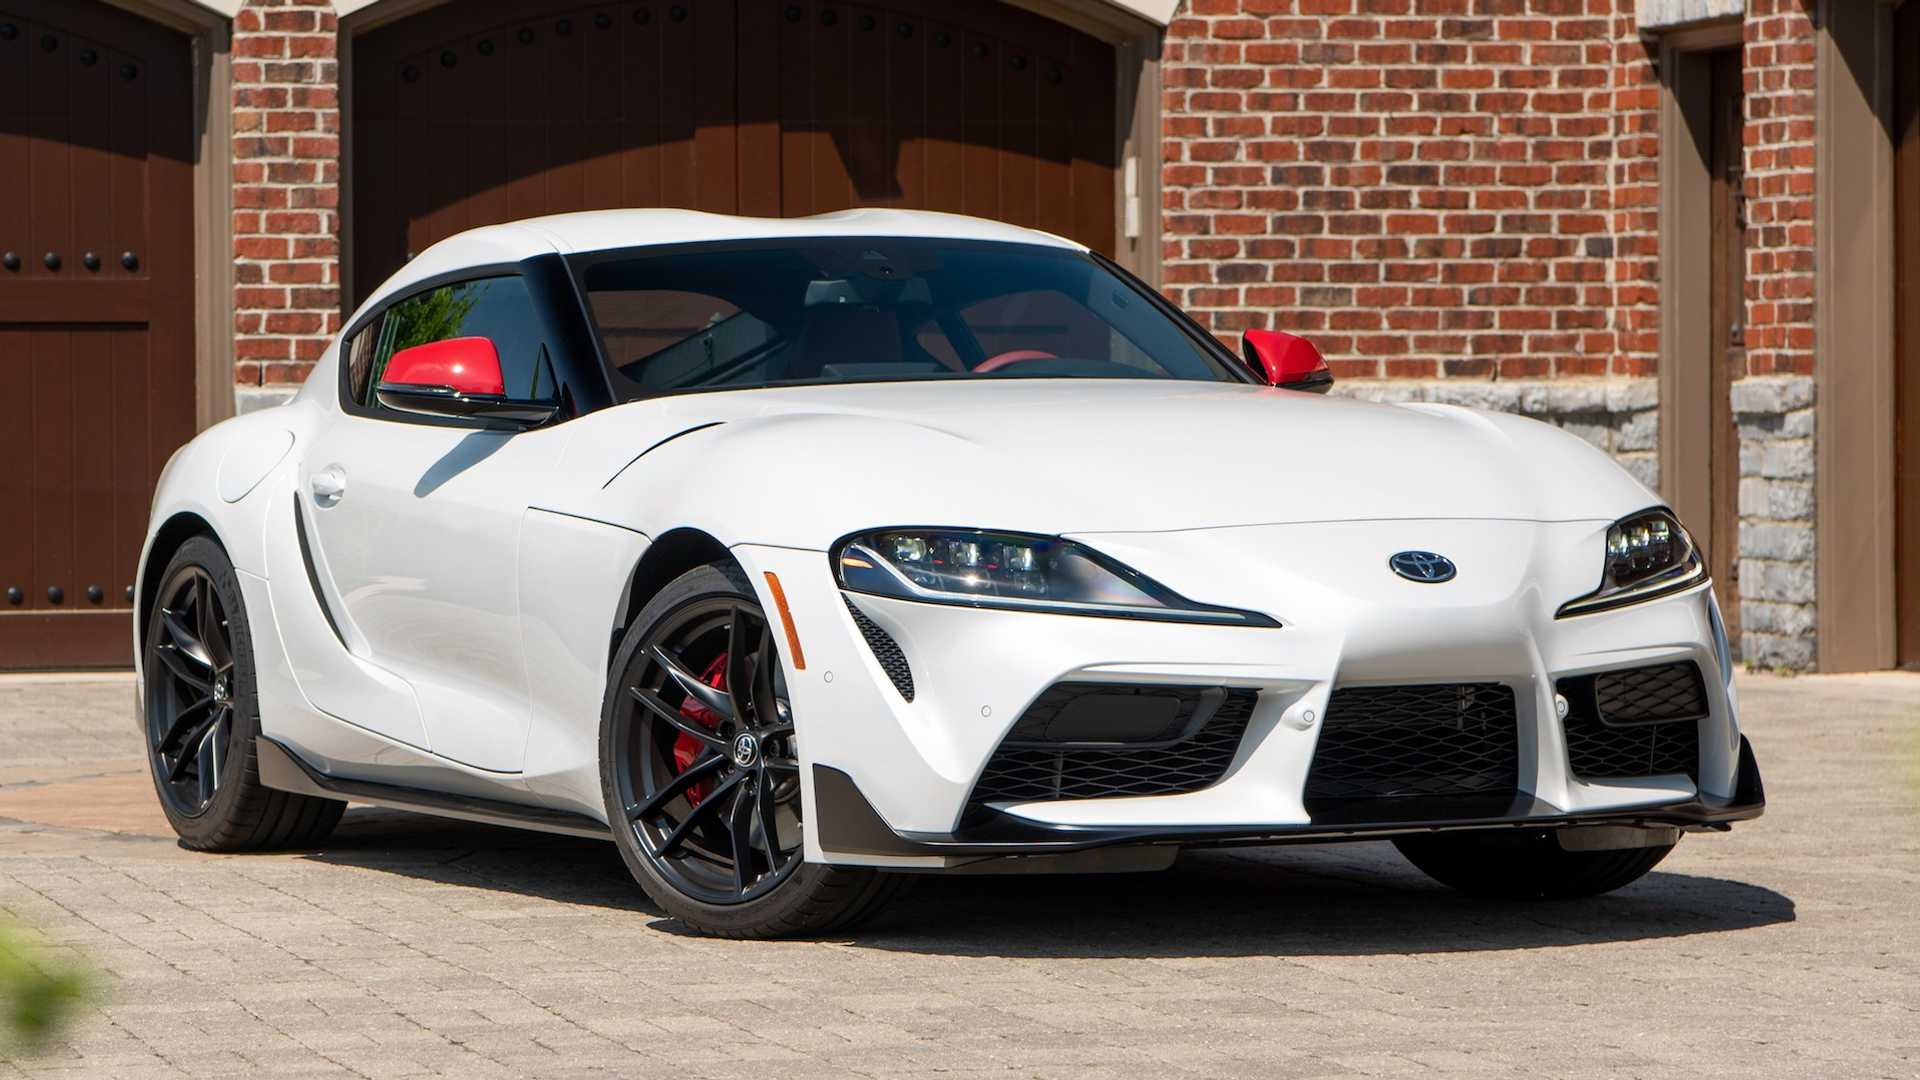 65 New Pictures Of The 2020 Toyota Supra Interior